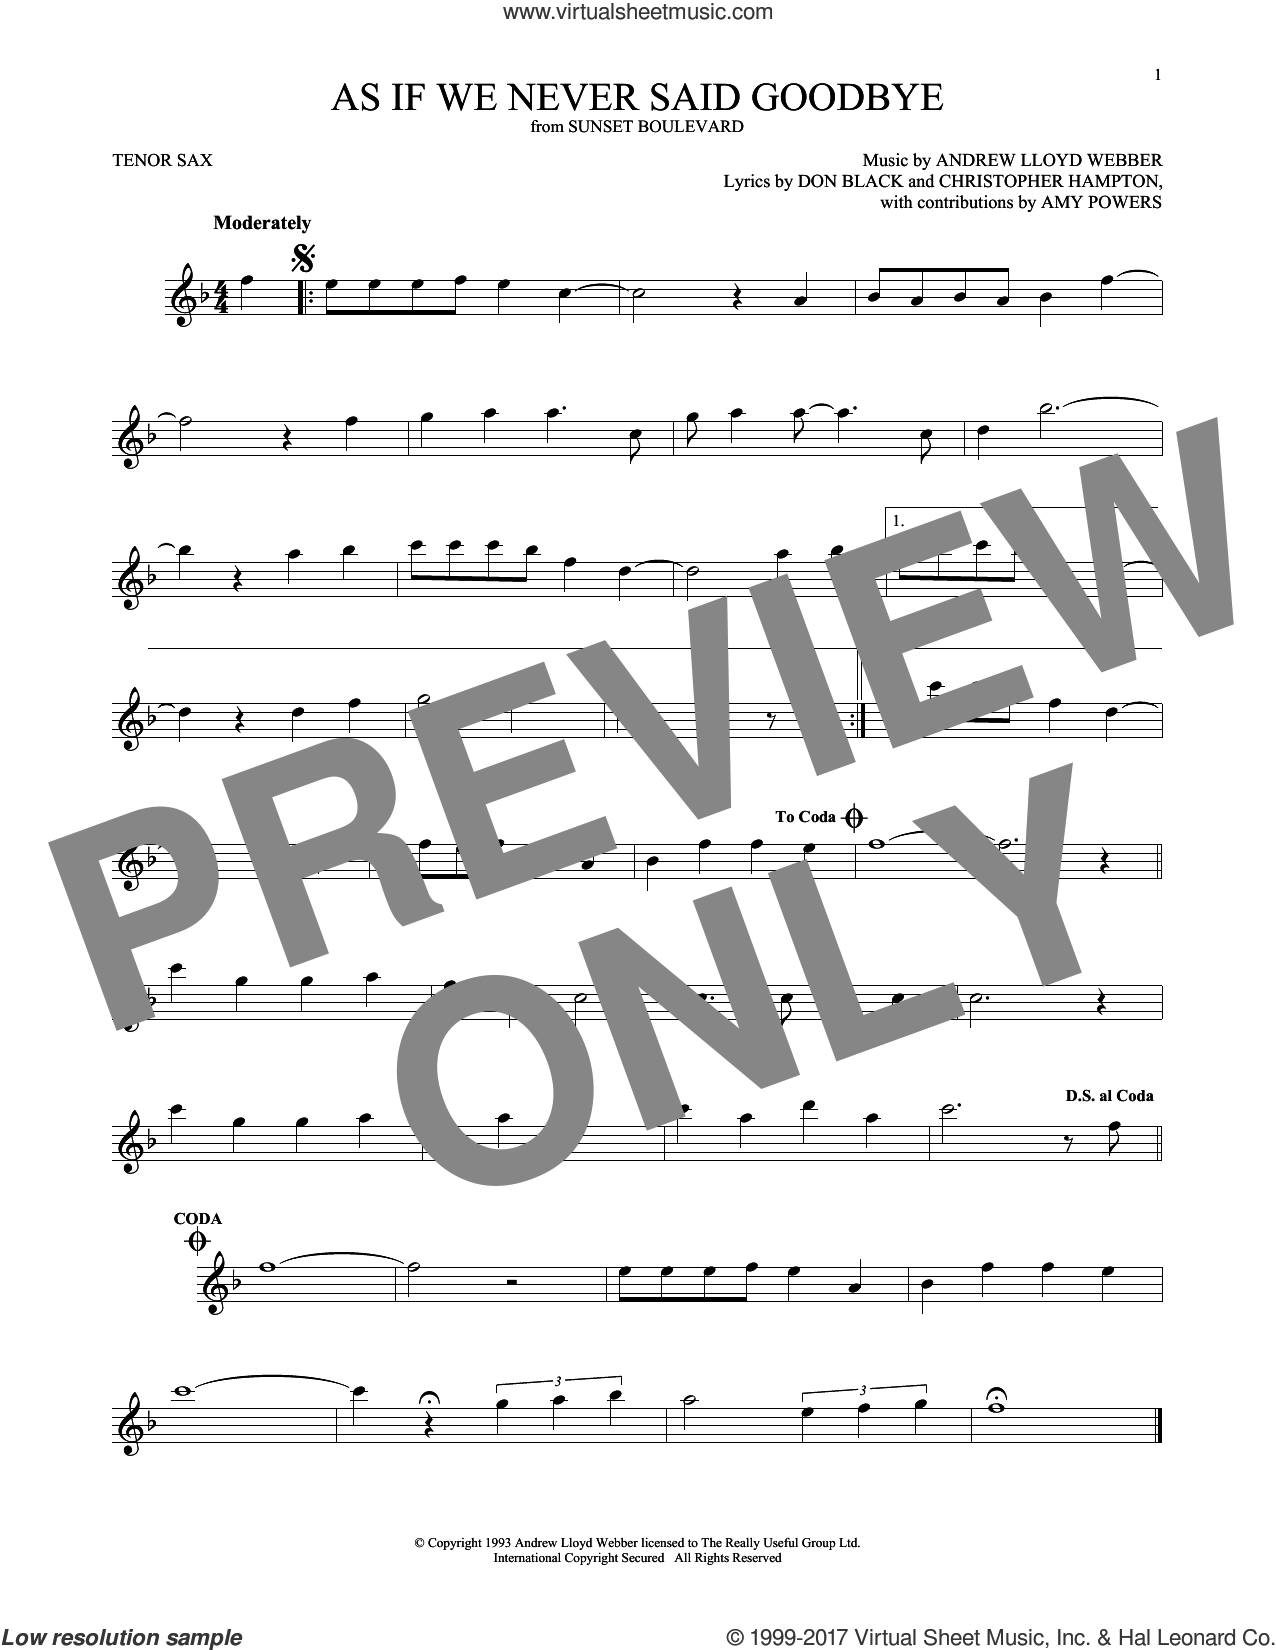 As If We Never Said Goodbye (from Sunset Boulevard) sheet music for tenor saxophone solo by Andrew Lloyd Webber, Christopher Hampton and Don Black, intermediate skill level